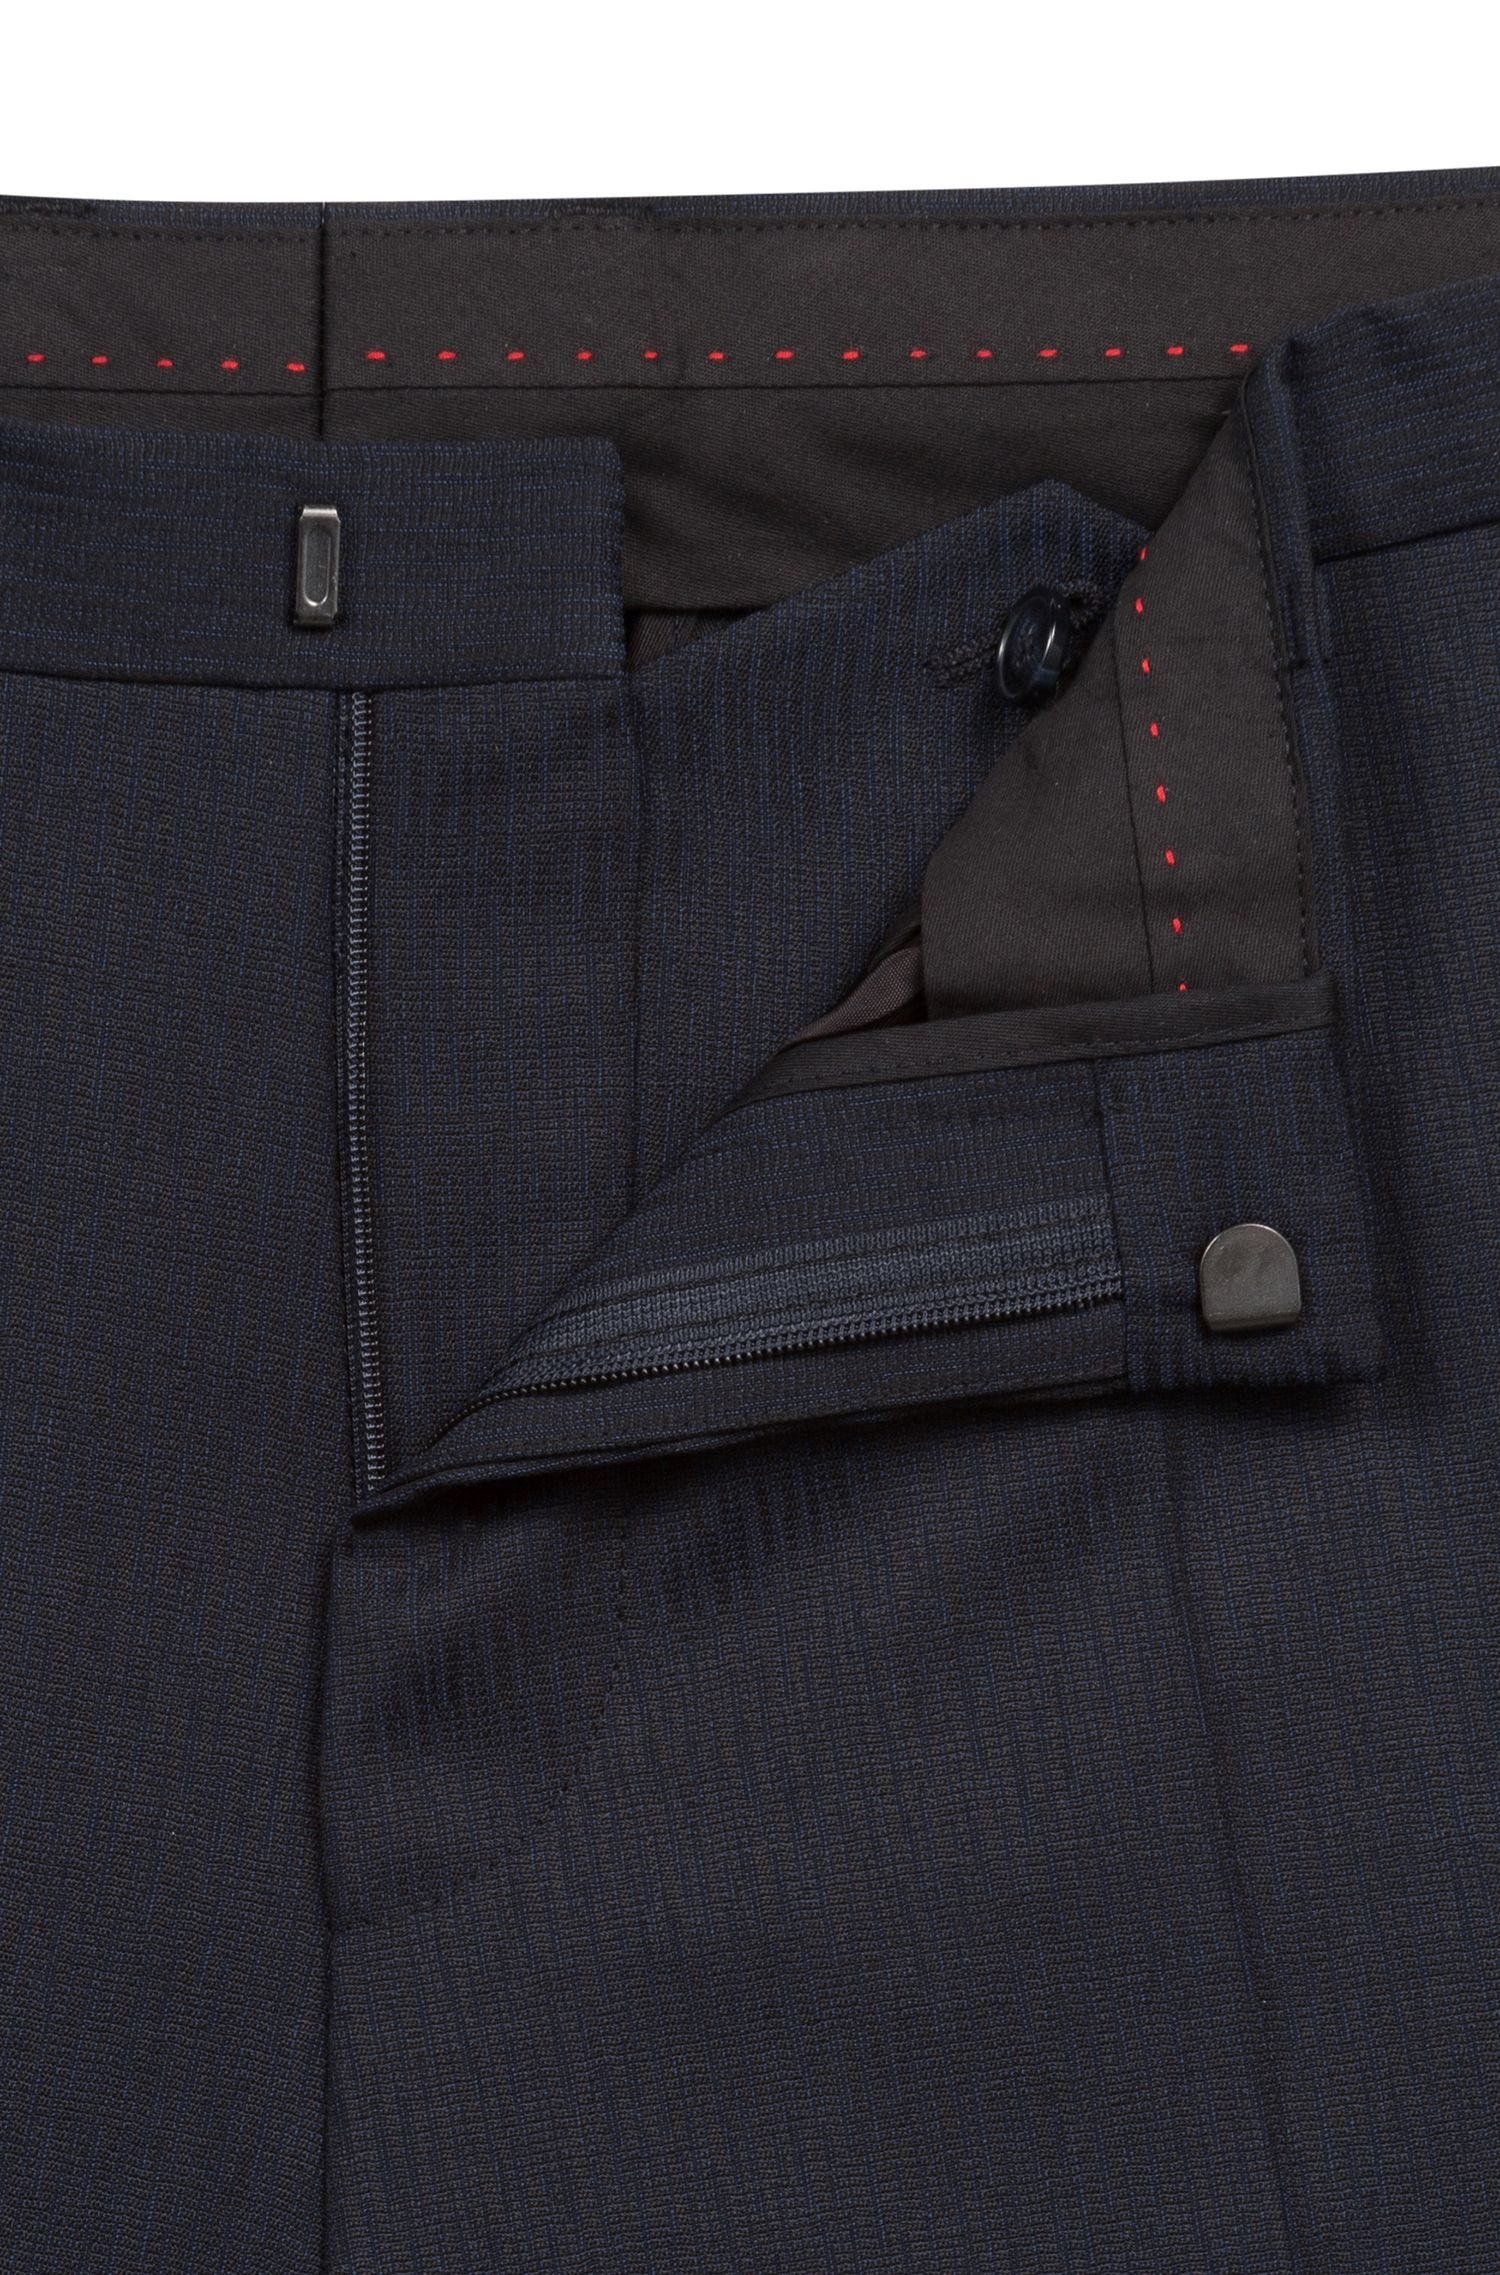 Extra-slim-fit suit in structured virgin wool